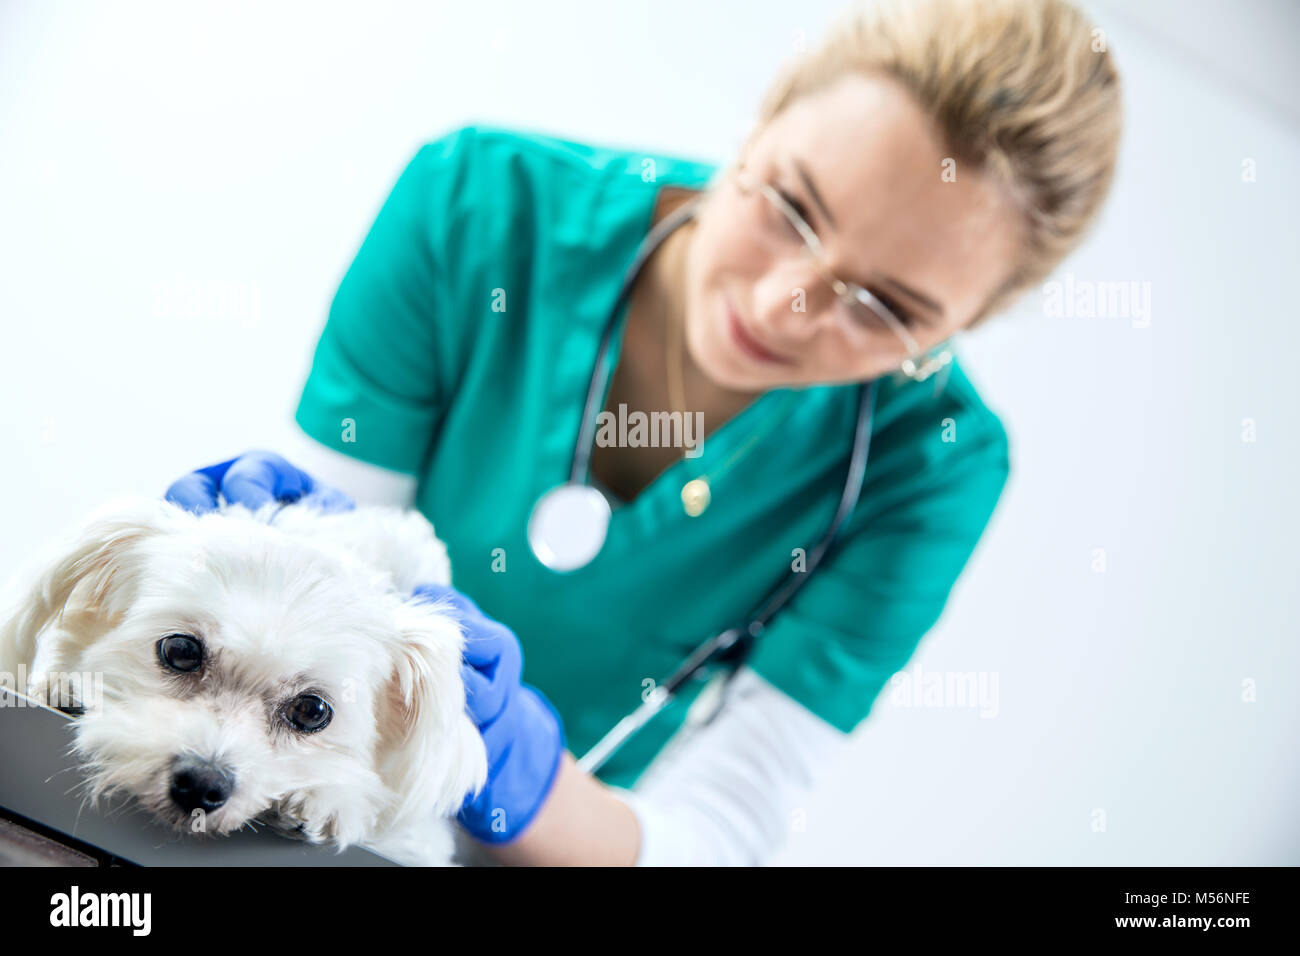 Female vet examines the dog - Stock Image